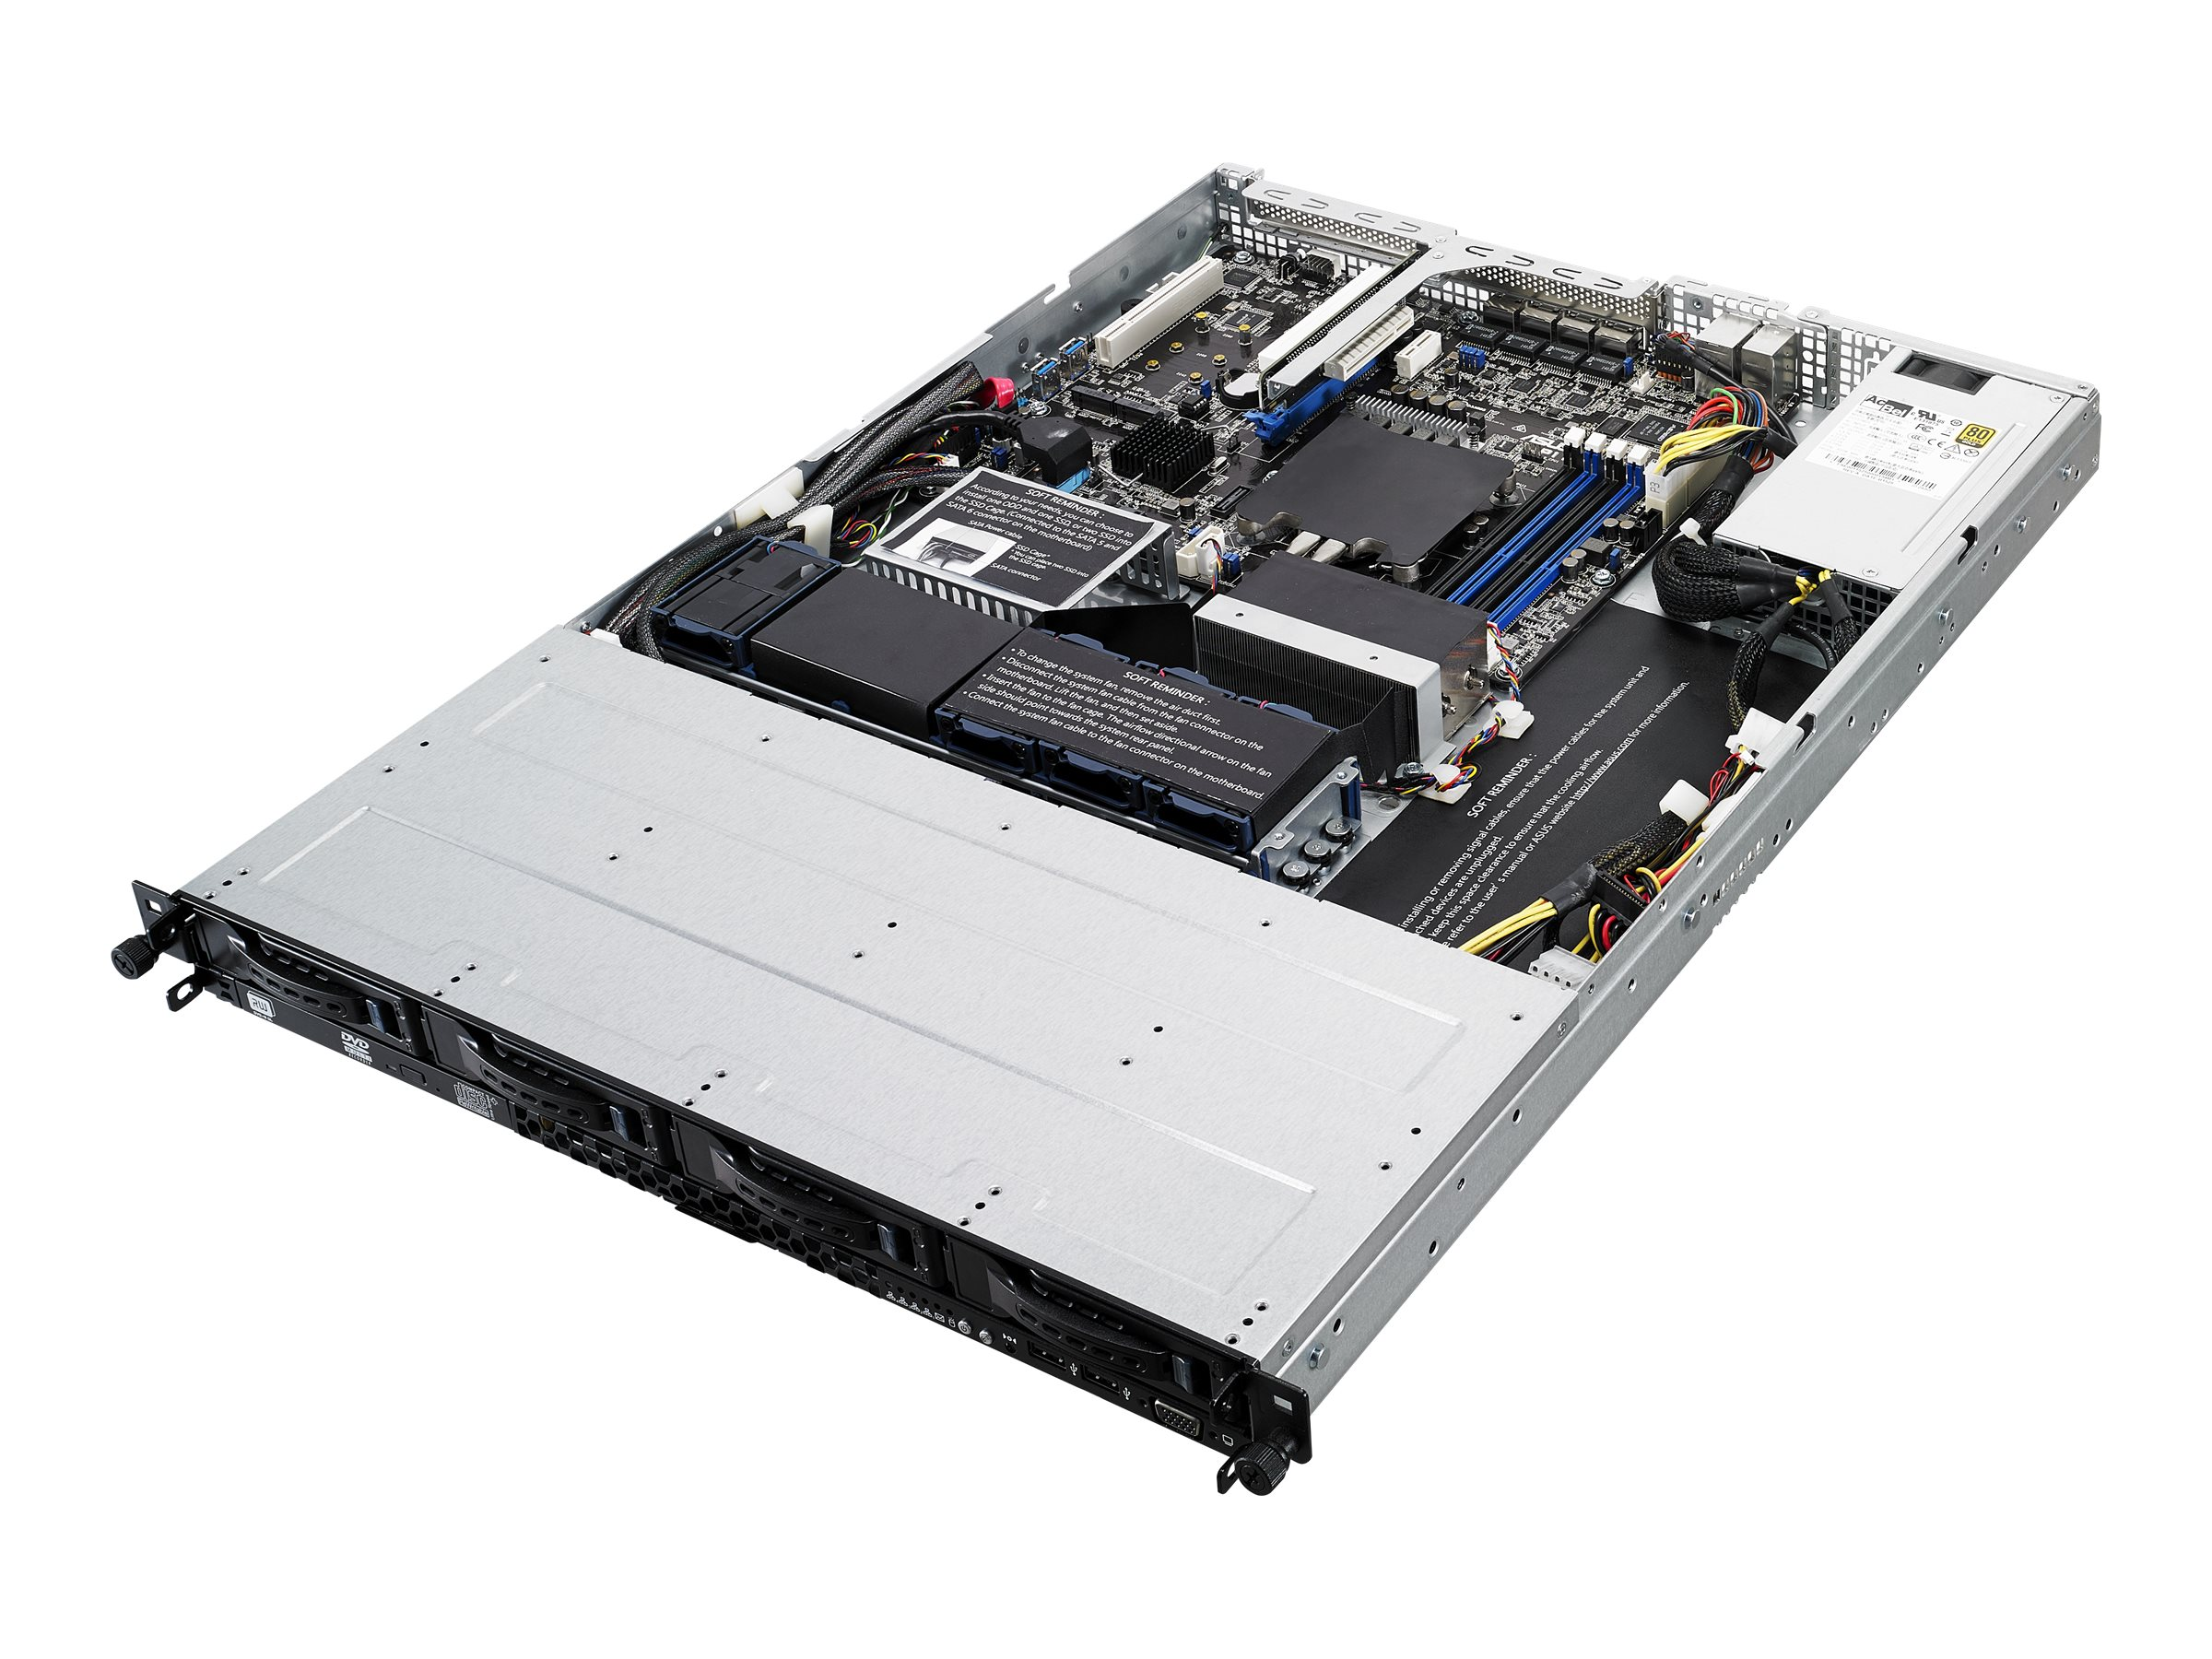 Asus RS300-E9-PS4 Image 2